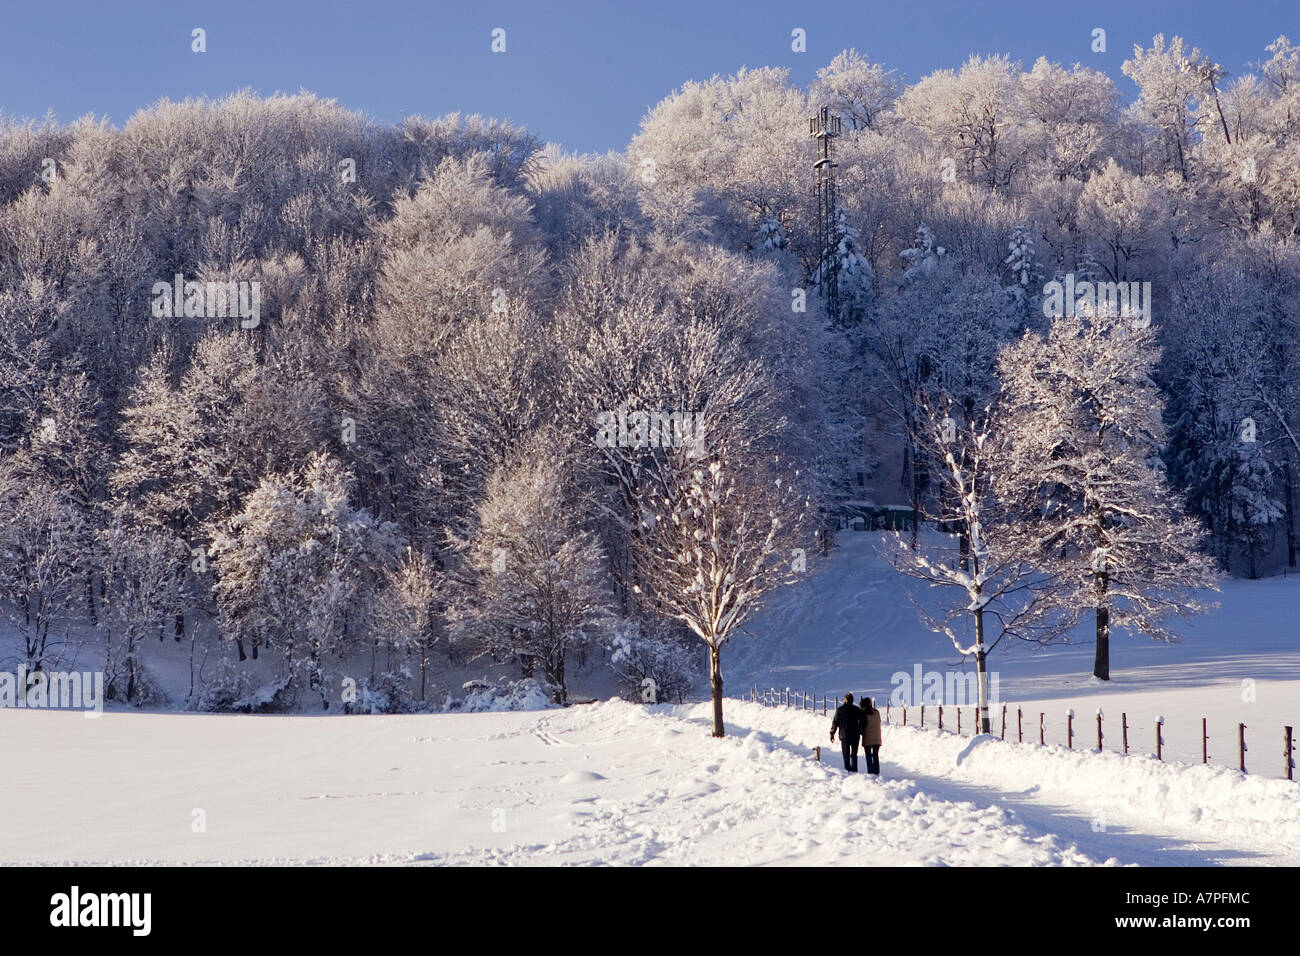 Strollers enjoy the winter fairytale at the Peilstein hill Lower Austria - Stock Image